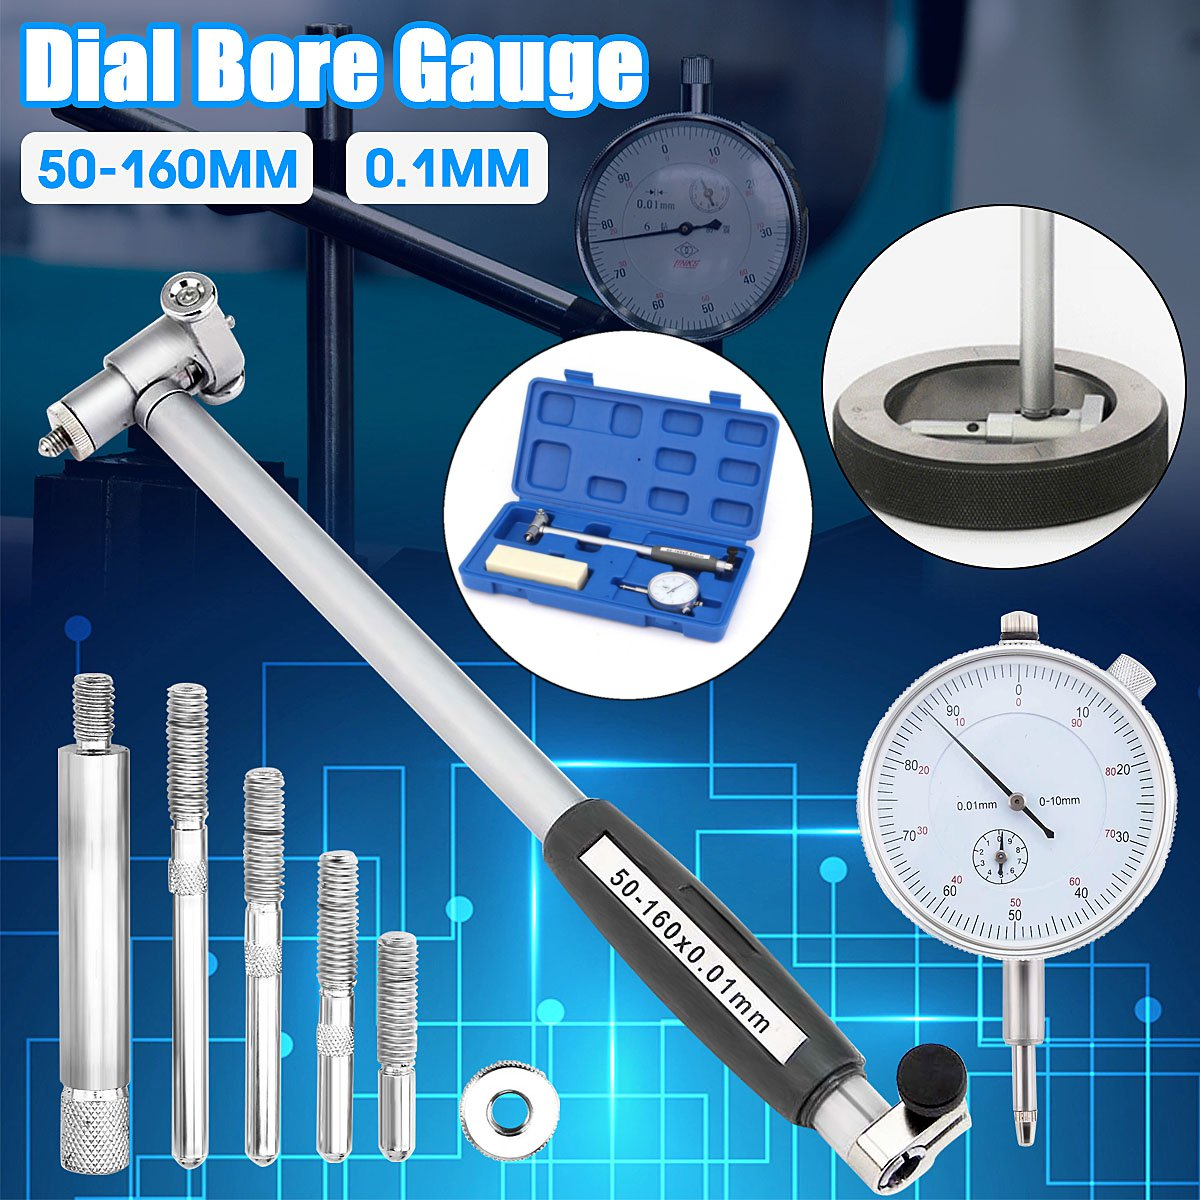 Dial Bore Gauge 10-18mm Cylinder Internal Bore Measuring Engine Gage Tool New